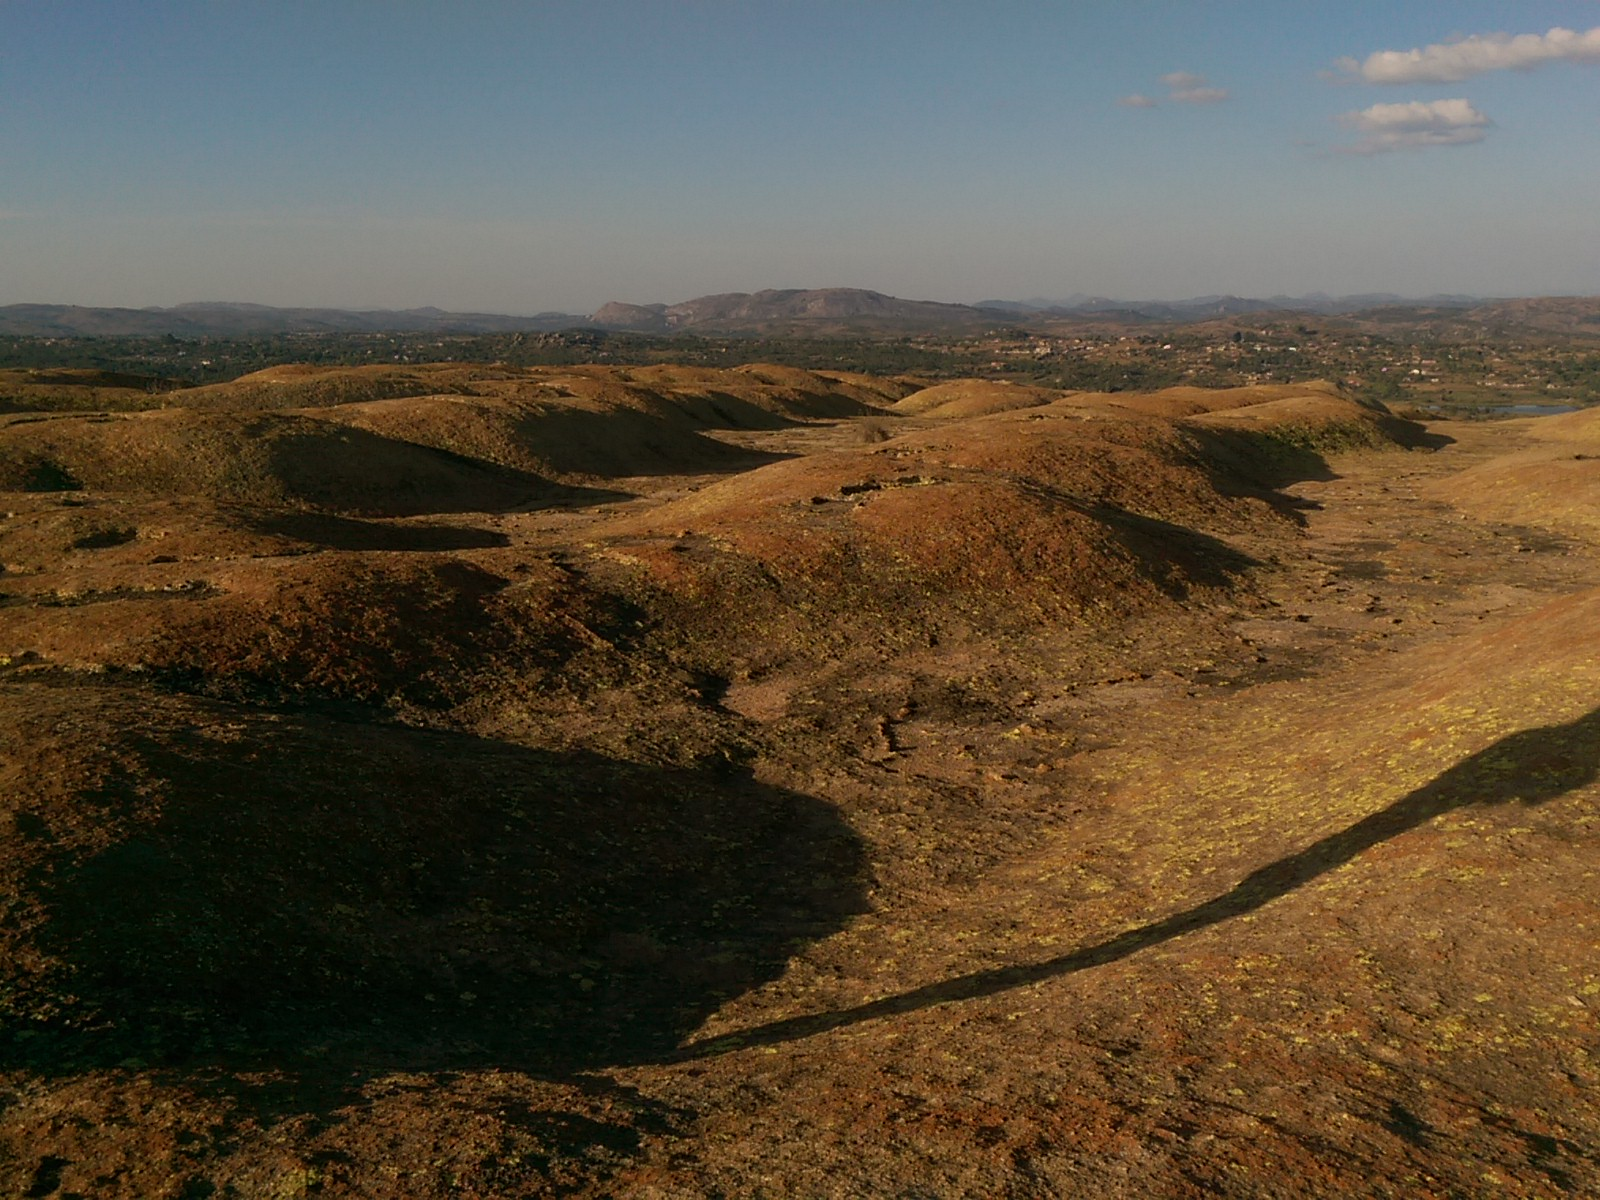 Epic landscape view of rolling granite hills and a blue sky